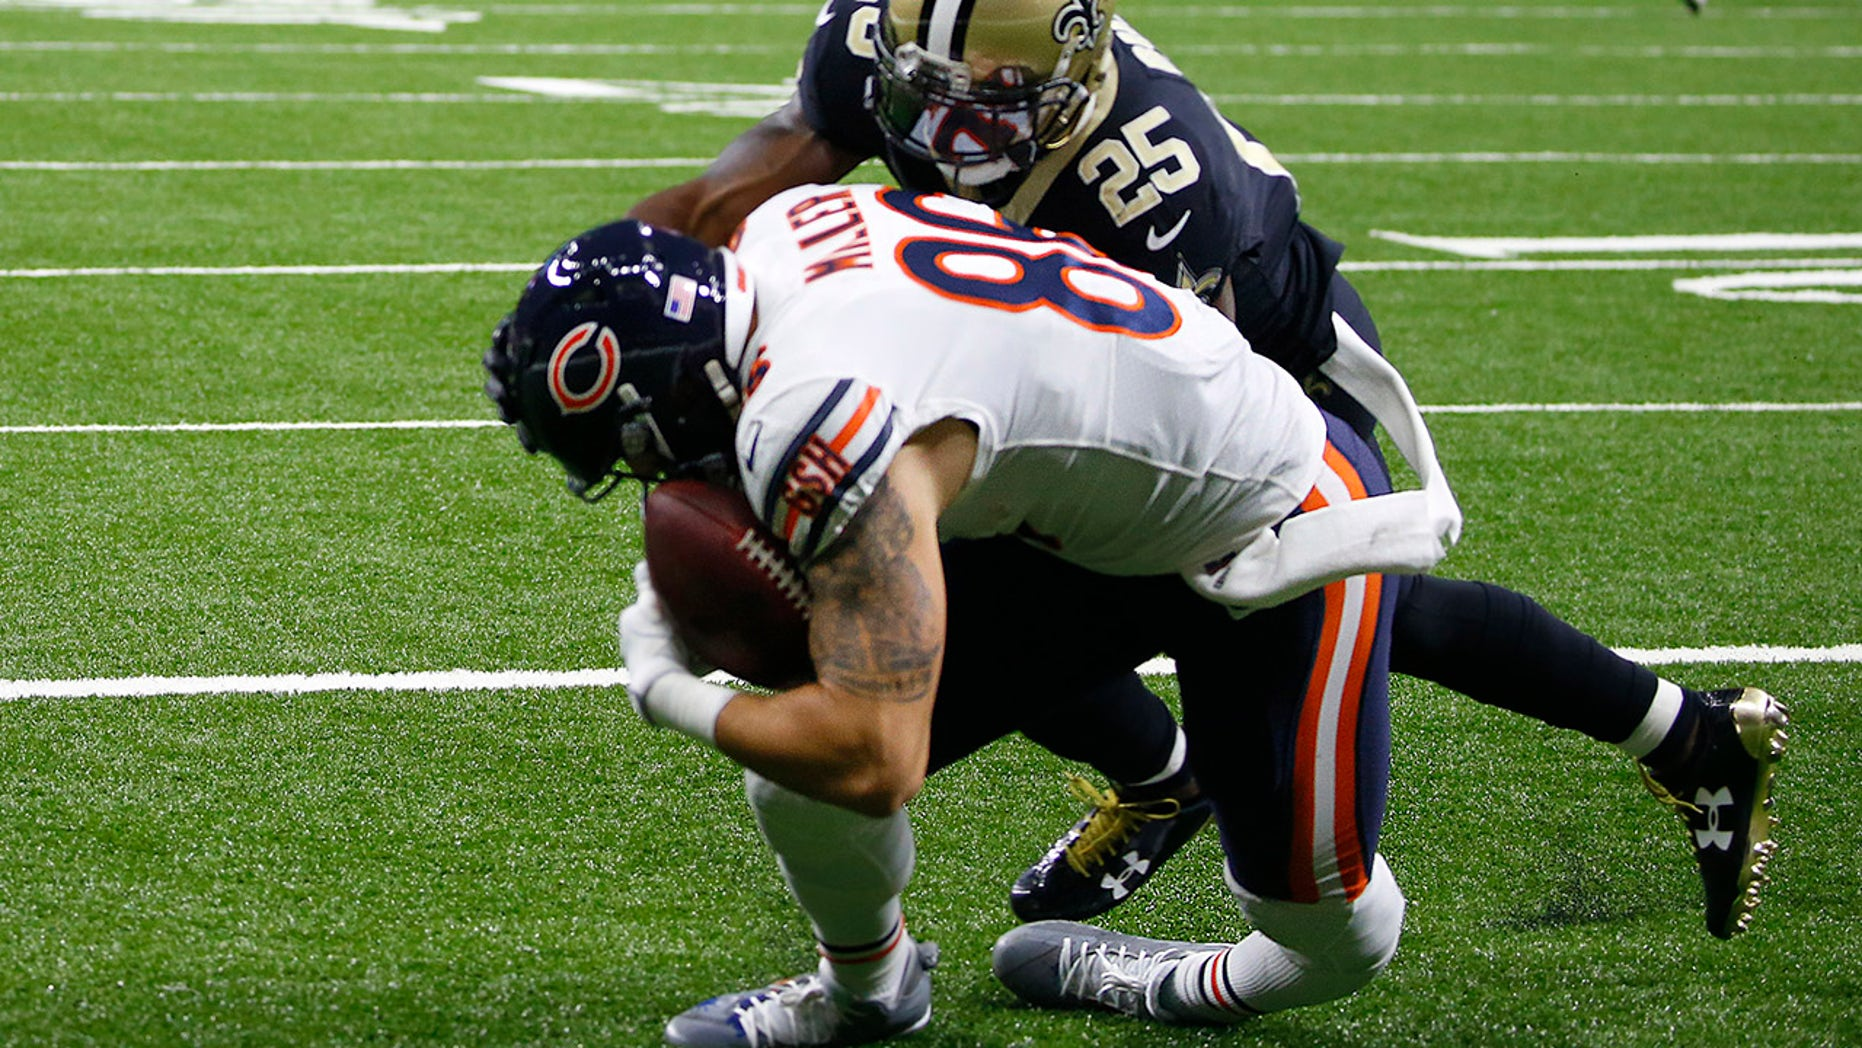 Bears tight end undergoes emergency surgery after gruesome